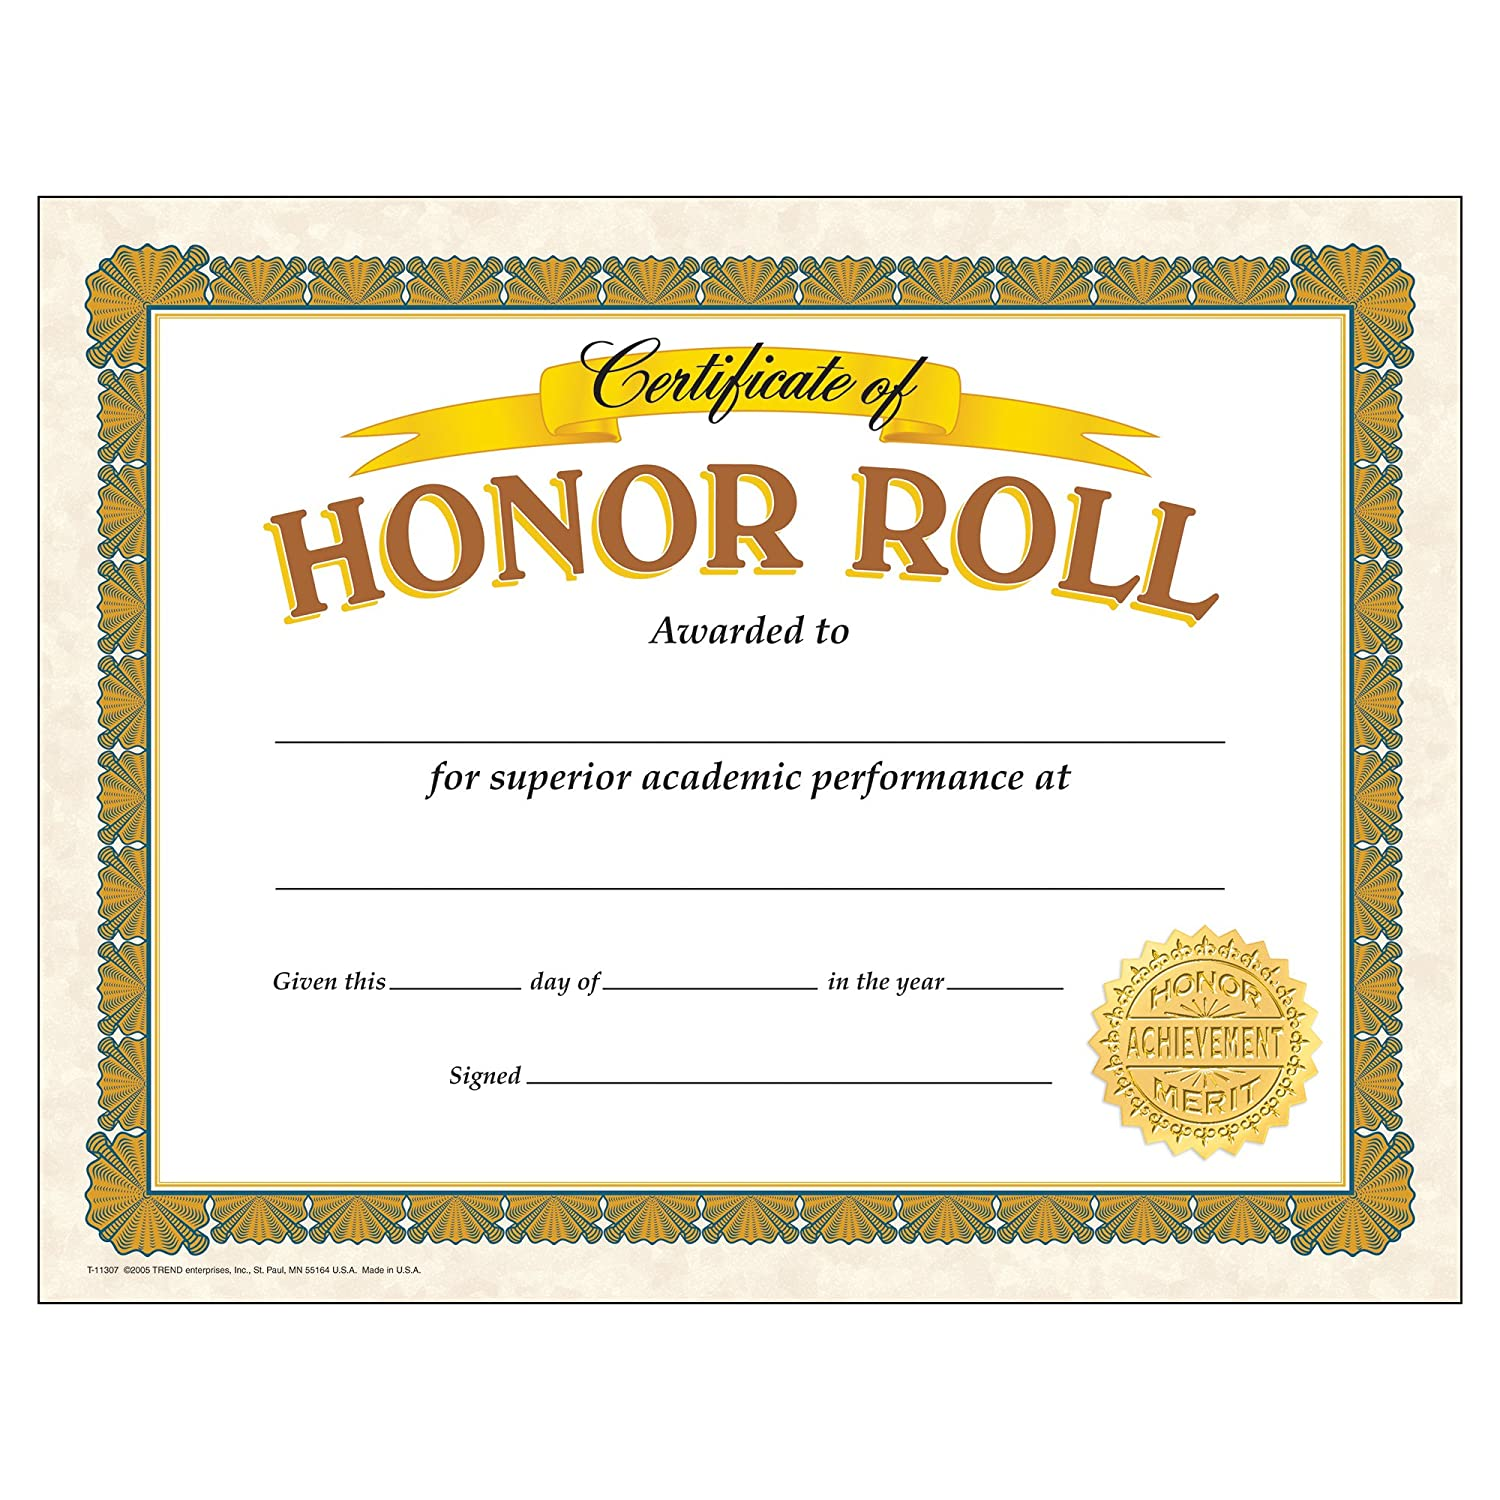 TREND Sale special price enterprises Inc. T-11307BN Classic Certificate Reservation Roll Honor